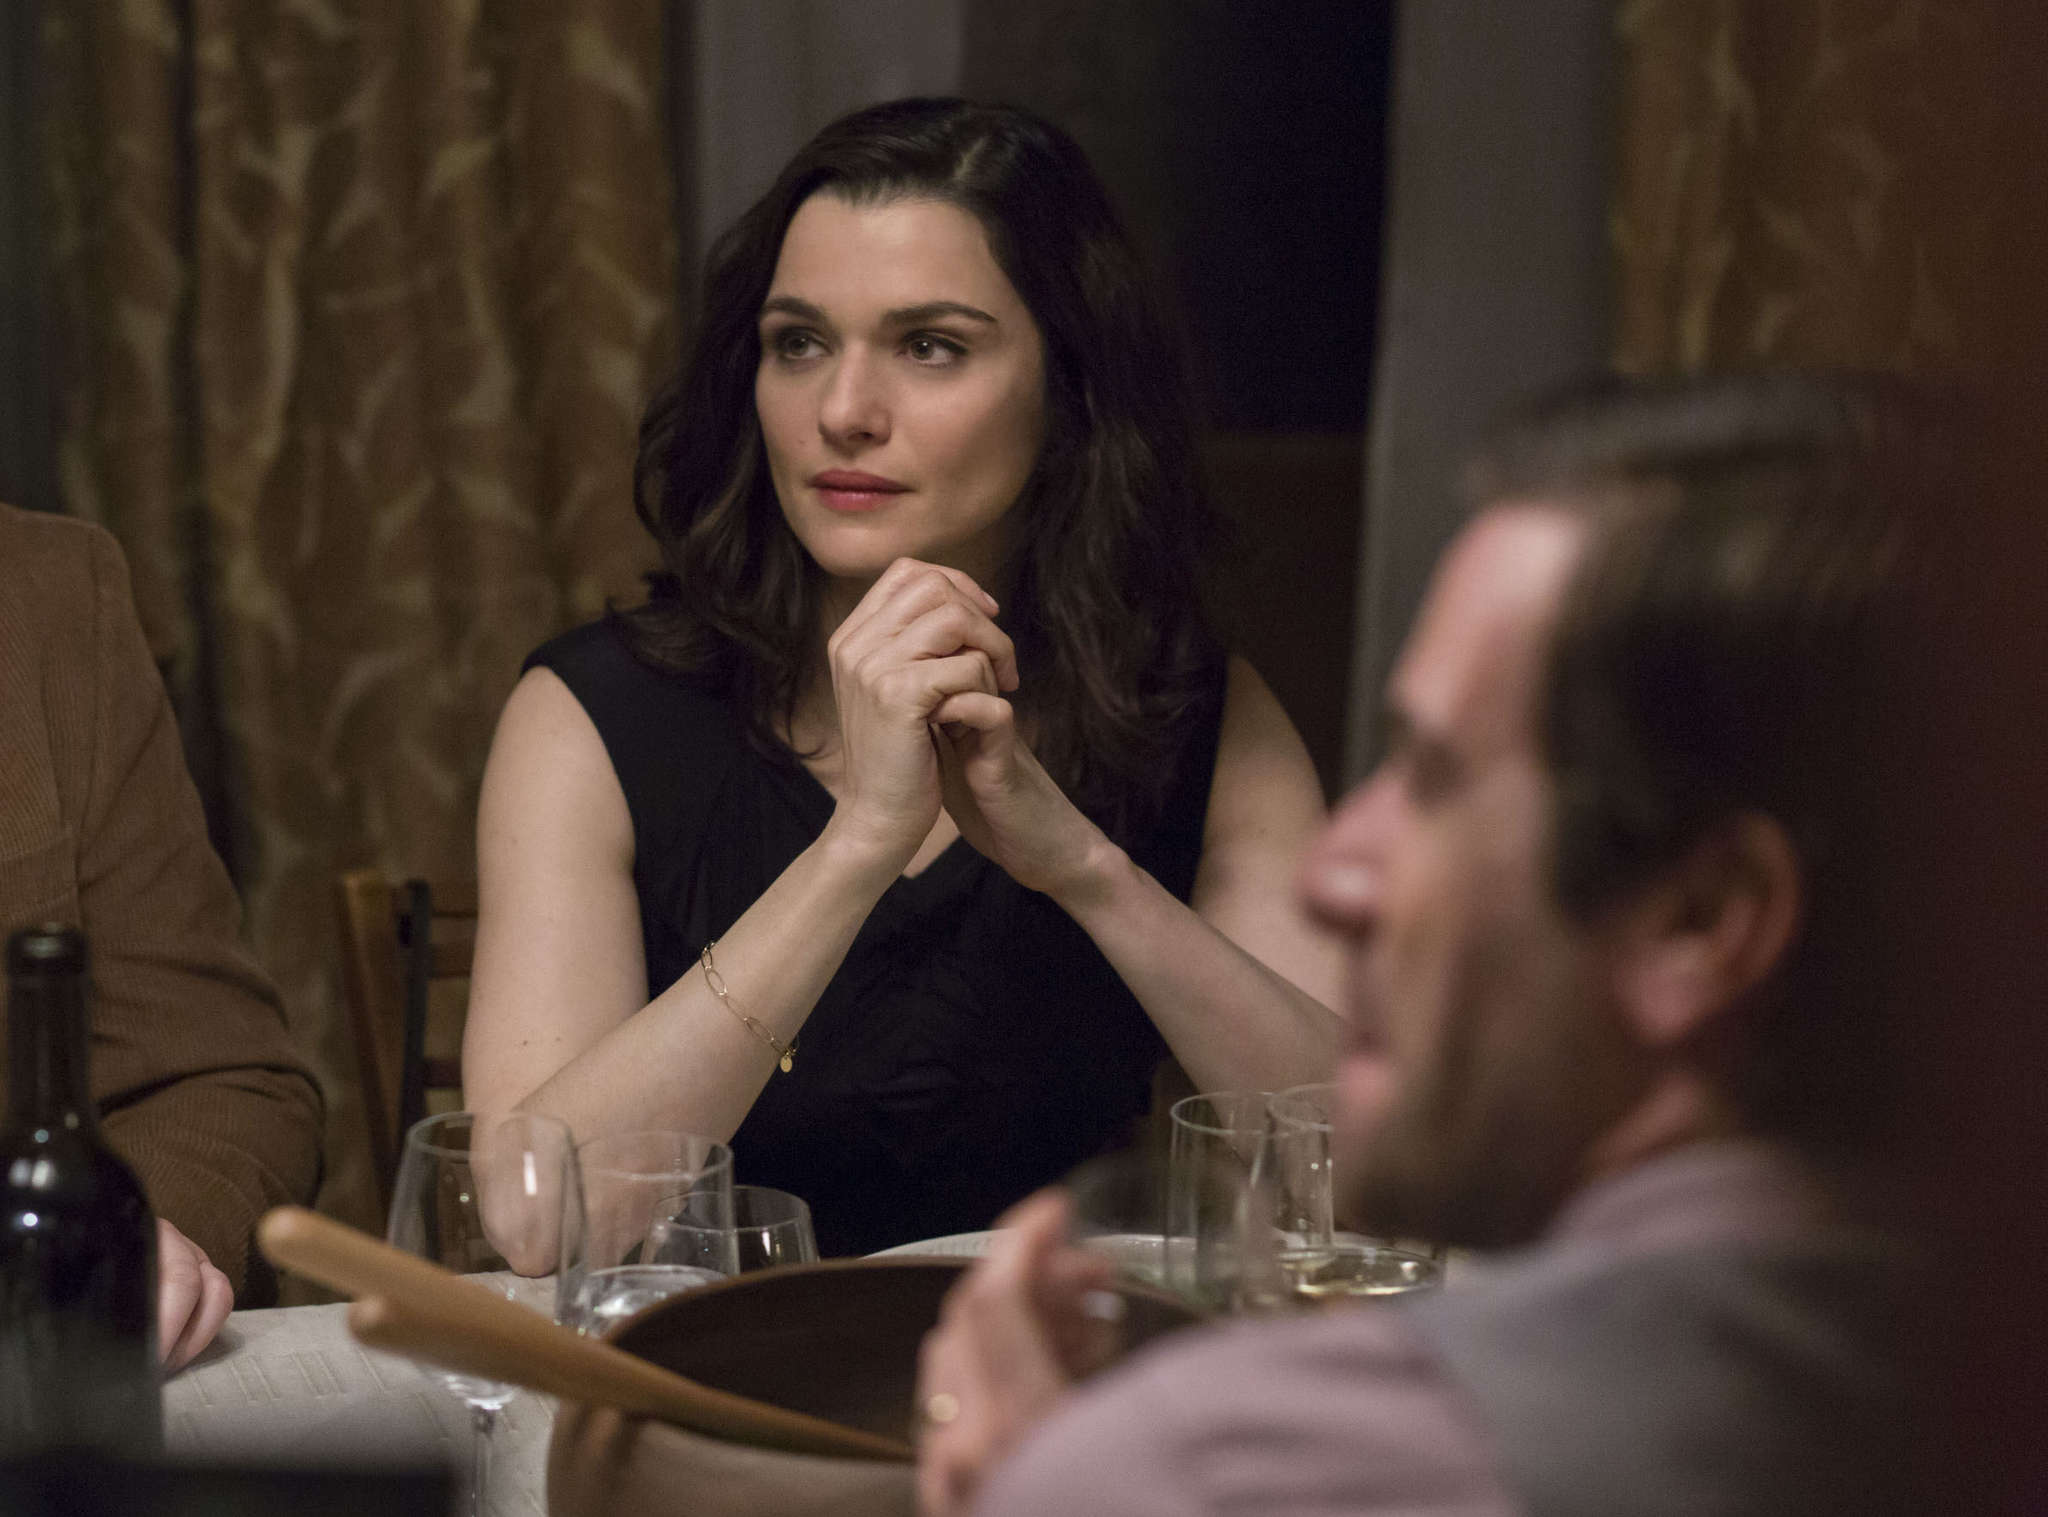 """Rachel Weisz stars as a woman who adopts and drops aliases like a spy in """"Complete Unknown,"""" director Joshua Marston´s romantic melodrama/ enigmatic psychodrama."""